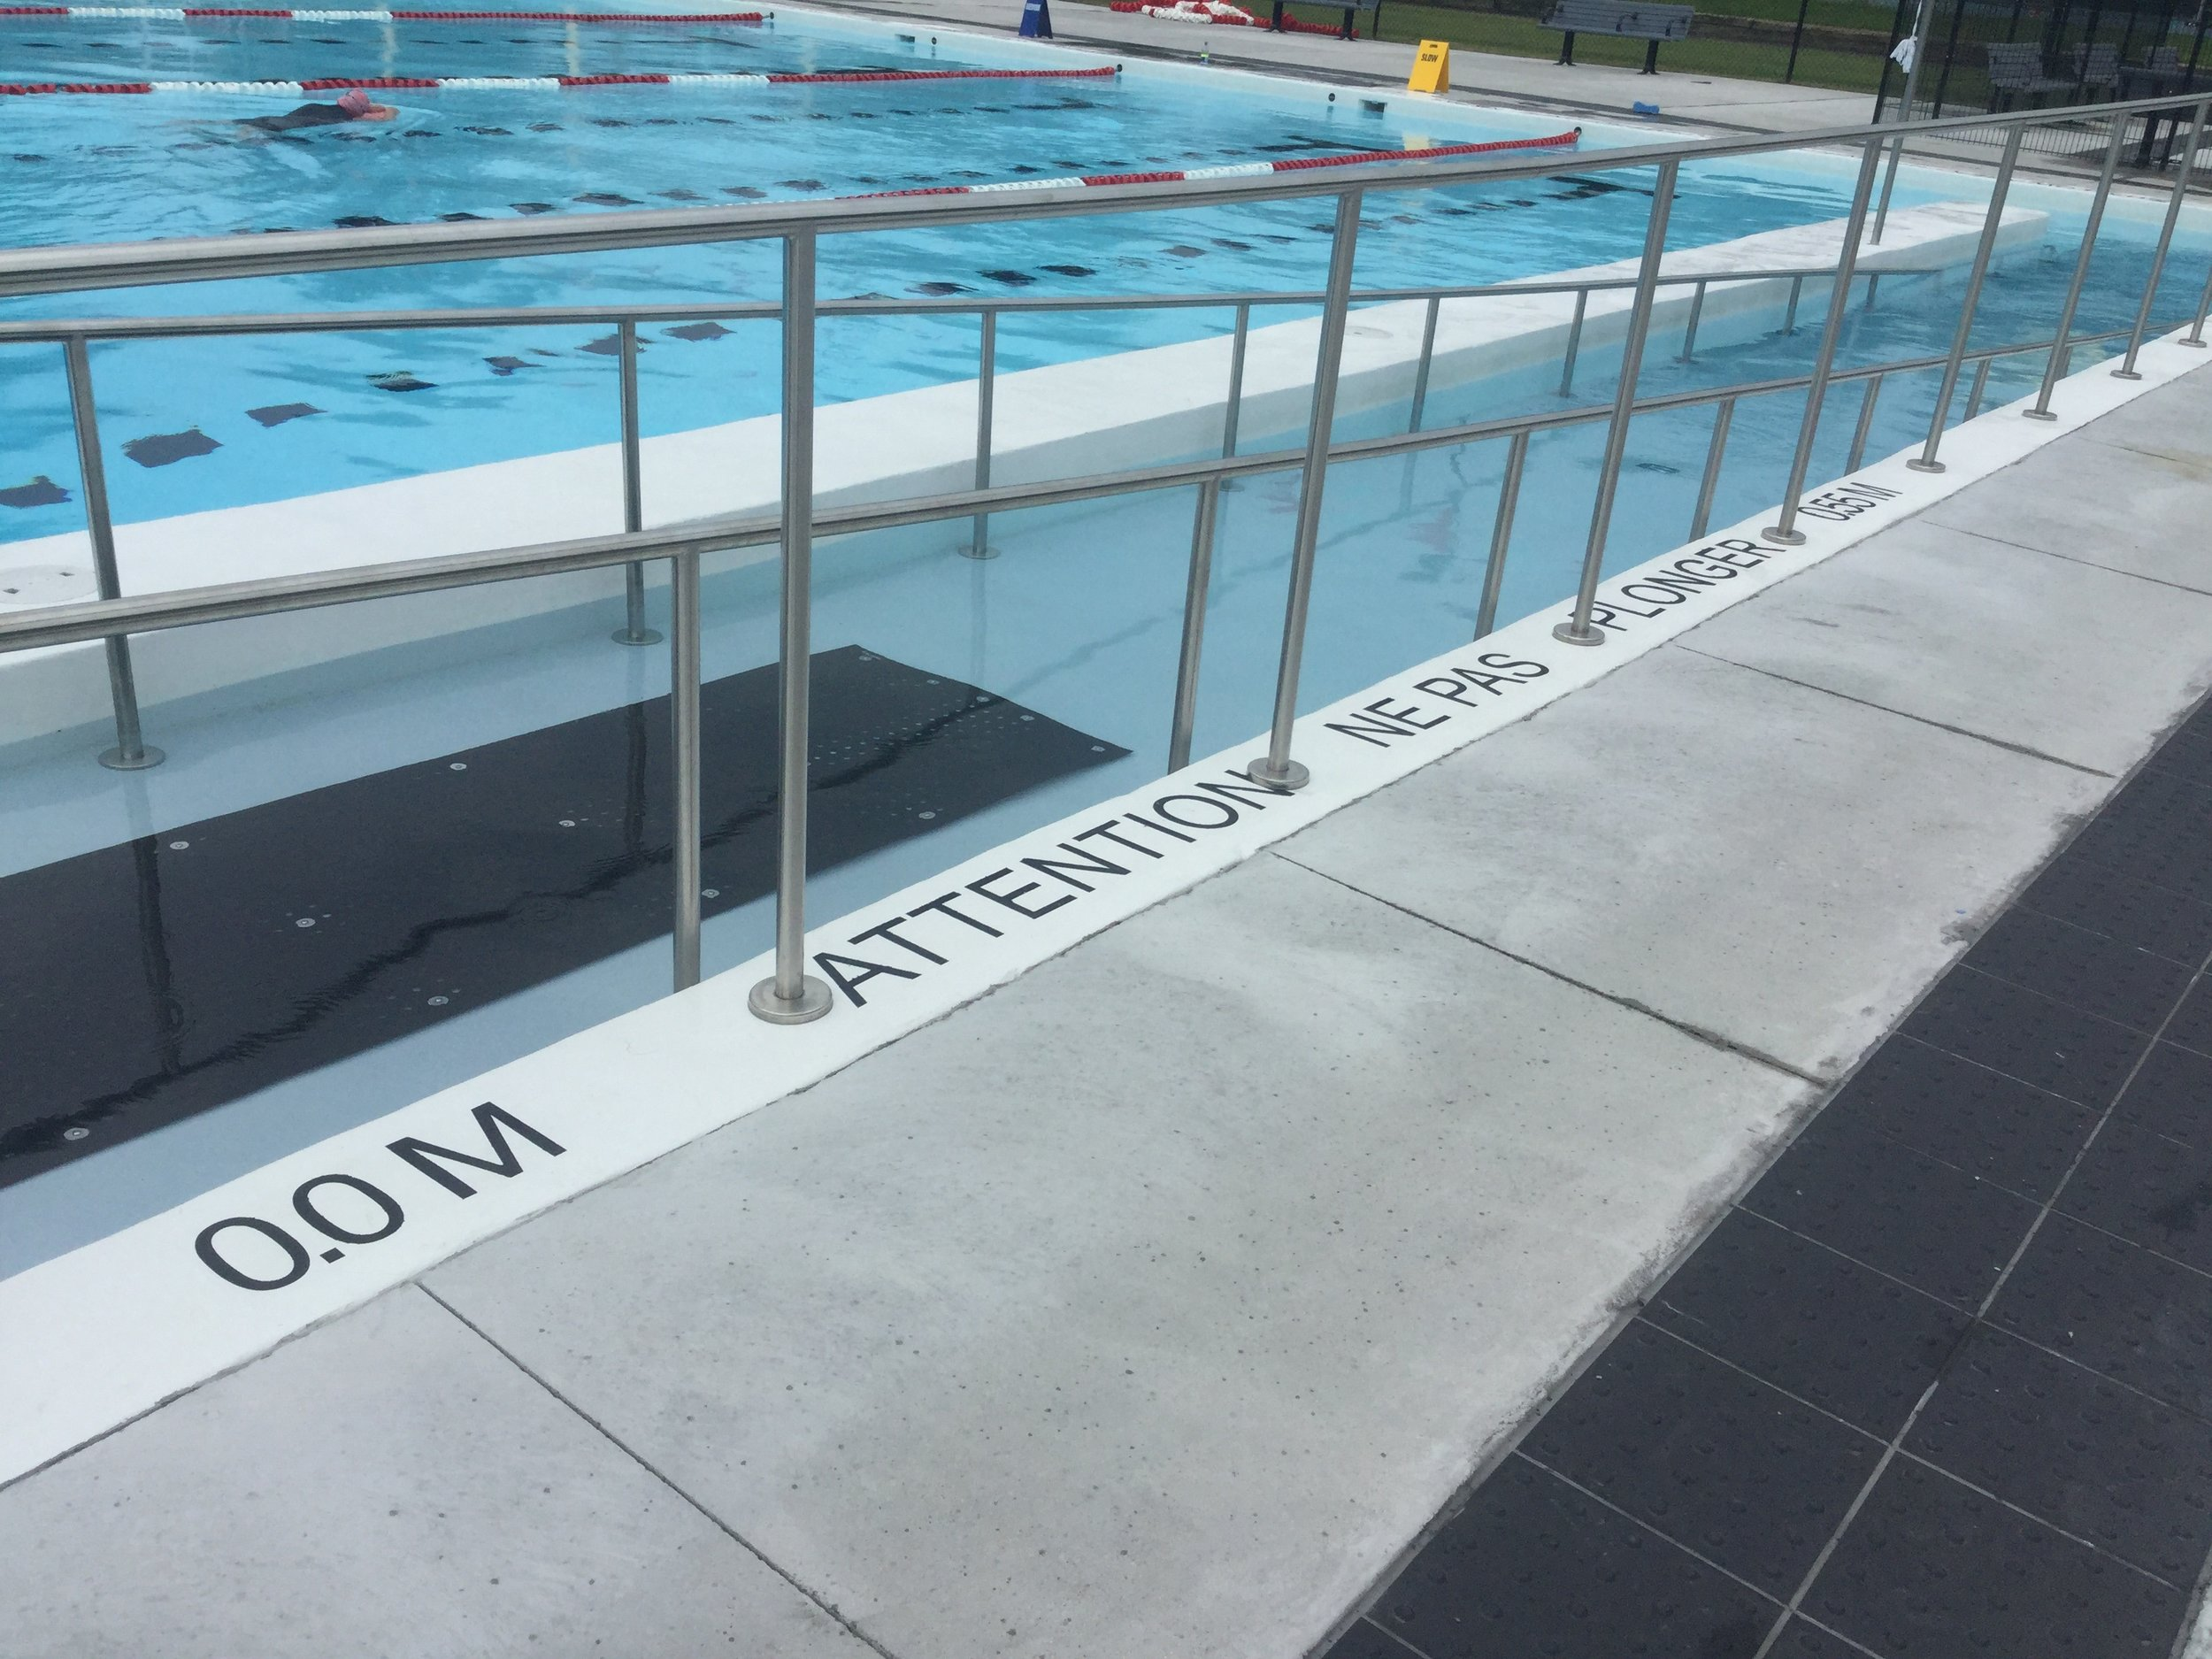 ottawa pool works stencils.jpg